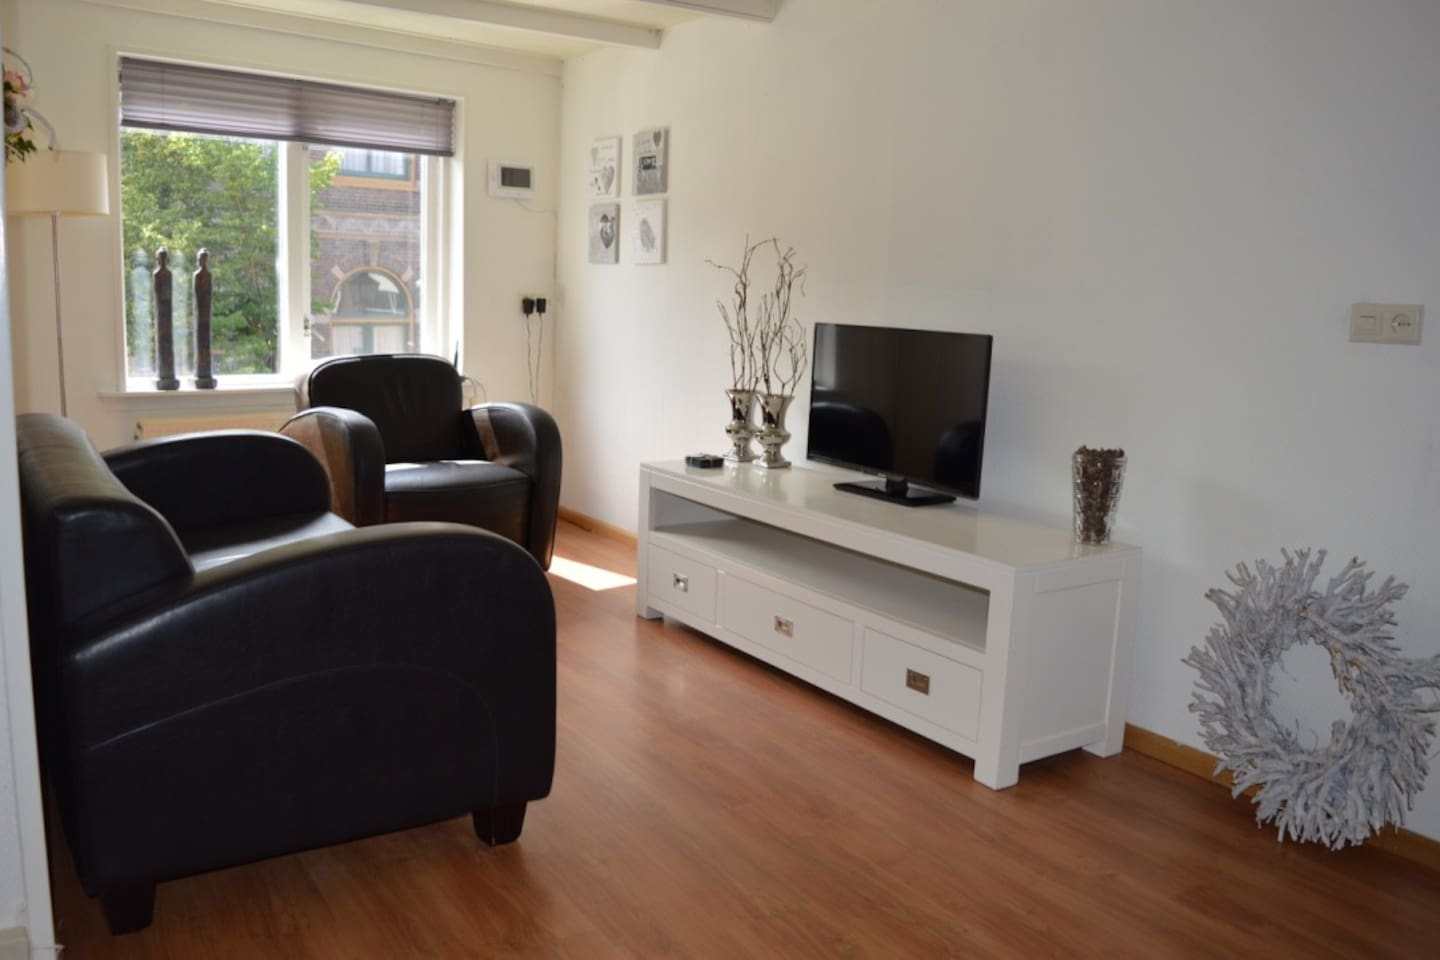 Complete house in the city center of Hoorn, close to Amsterdam